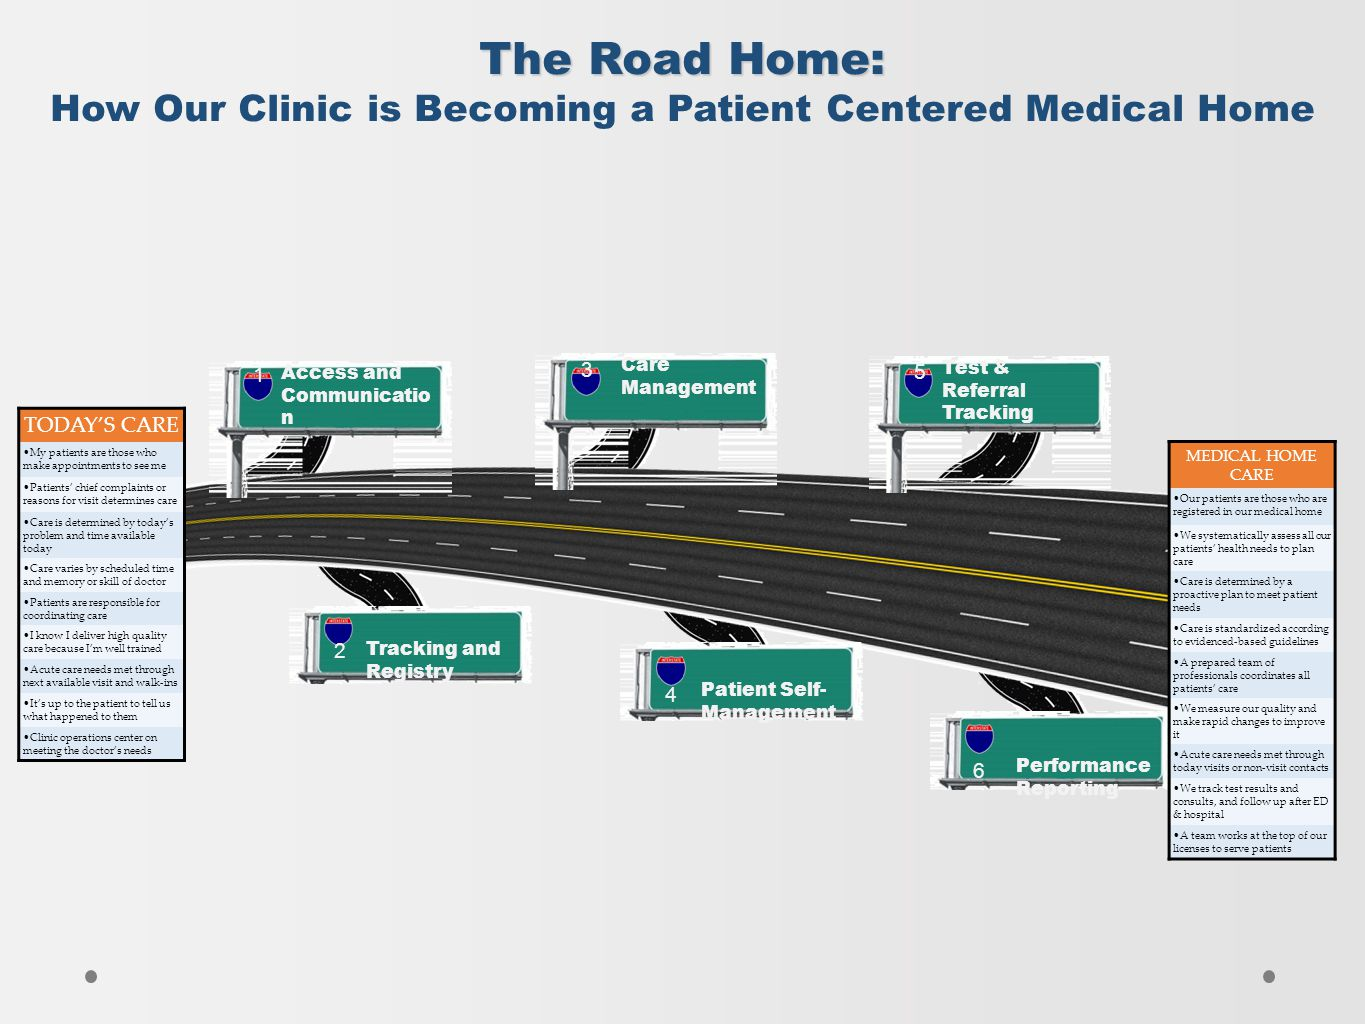 The Road Home: How Our Clinic is Becoming a Patient Centered Medical Home Access and Communicatio n Tracking and Registry Care Management Patient Self- Management Test & Referral Tracking Performance Reporting 6 4 5 3 1 2 TODAYS CARE My patients are those who make appointments to see me Patients chief complaints or reasons for visit determines care Care is determined by todays problem and time available today Care varies by scheduled time and memory or skill of doctor Patients are responsible for coordinating care I know I deliver high quality care because Im well trained Acute care needs met through next available visit and walk-ins Its up to the patient to tell us what happened to them Clinic operations center on meeting the doctors needs MEDICAL HOME CARE Our patients are those who are registered in our medical home We systematically assess all our patients health needs to plan care Care is determined by a proactive plan to meet patient needs Care is standardized according to evidenced-based guidelines A prepared team of professionals coordinates all patients care We measure our quality and make rapid changes to improve it Acute care needs met through today visits or non-visit contacts We track test results and consults, and follow up after ED & hospital A team works at the top of our licenses to serve patients